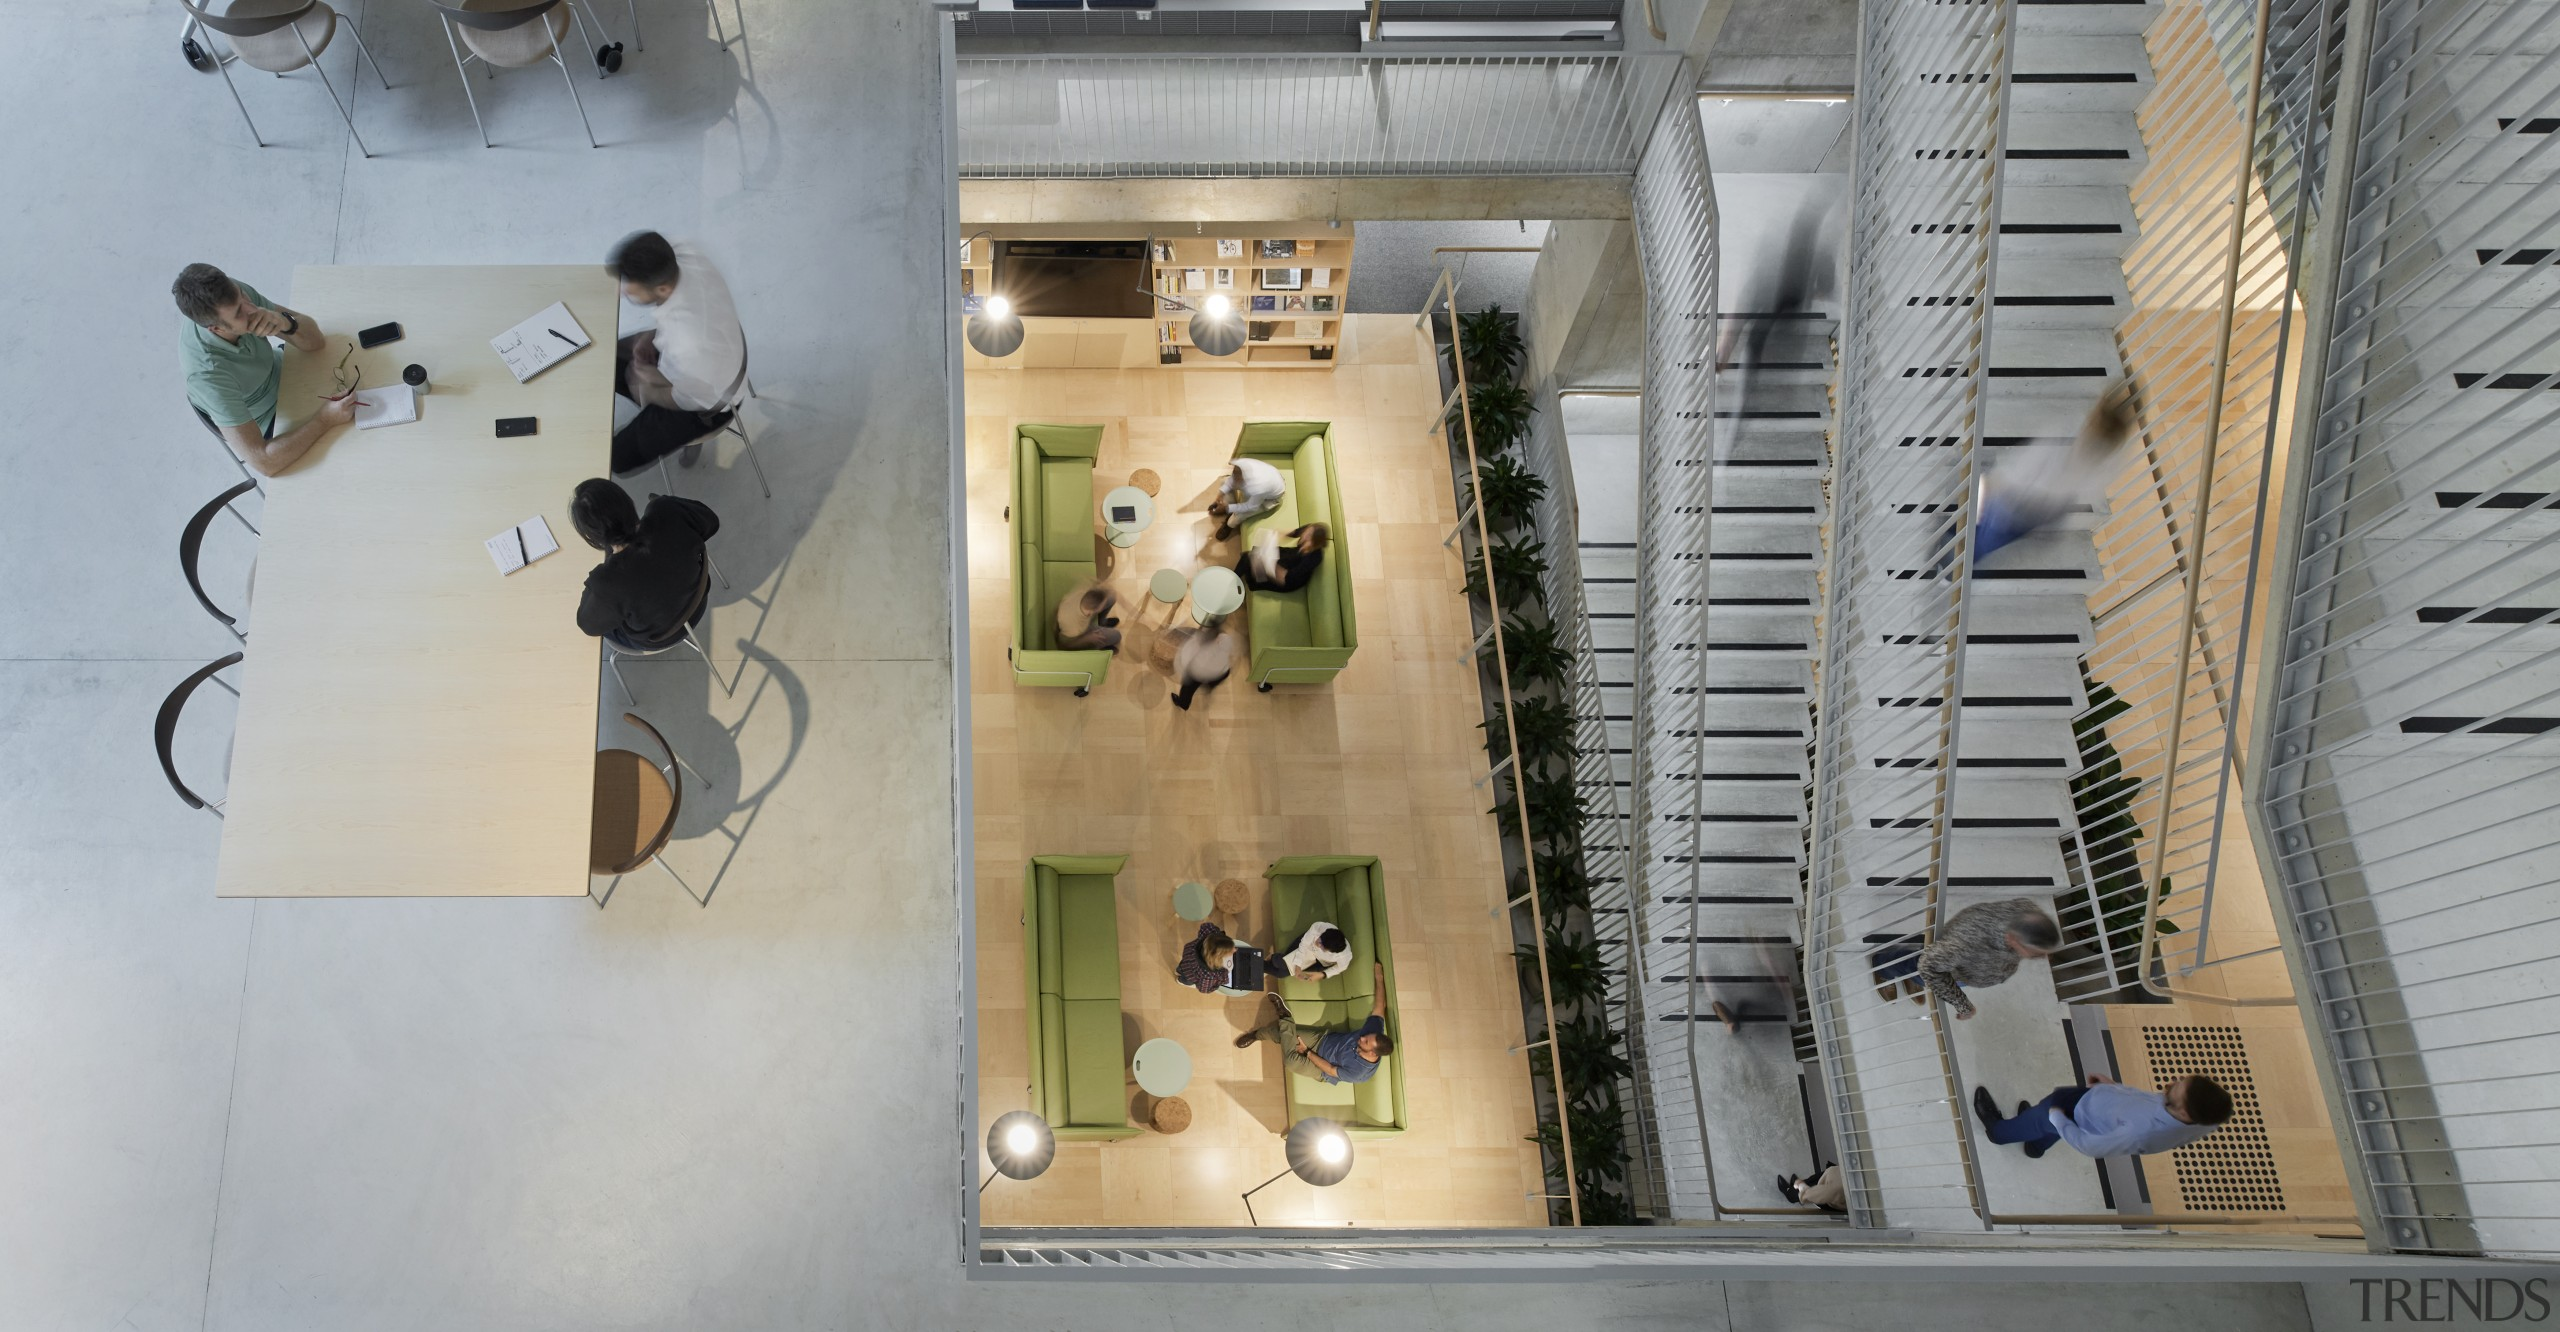 Layer upon layer – the view from the architecture, Arup office fitout, meeting spaces